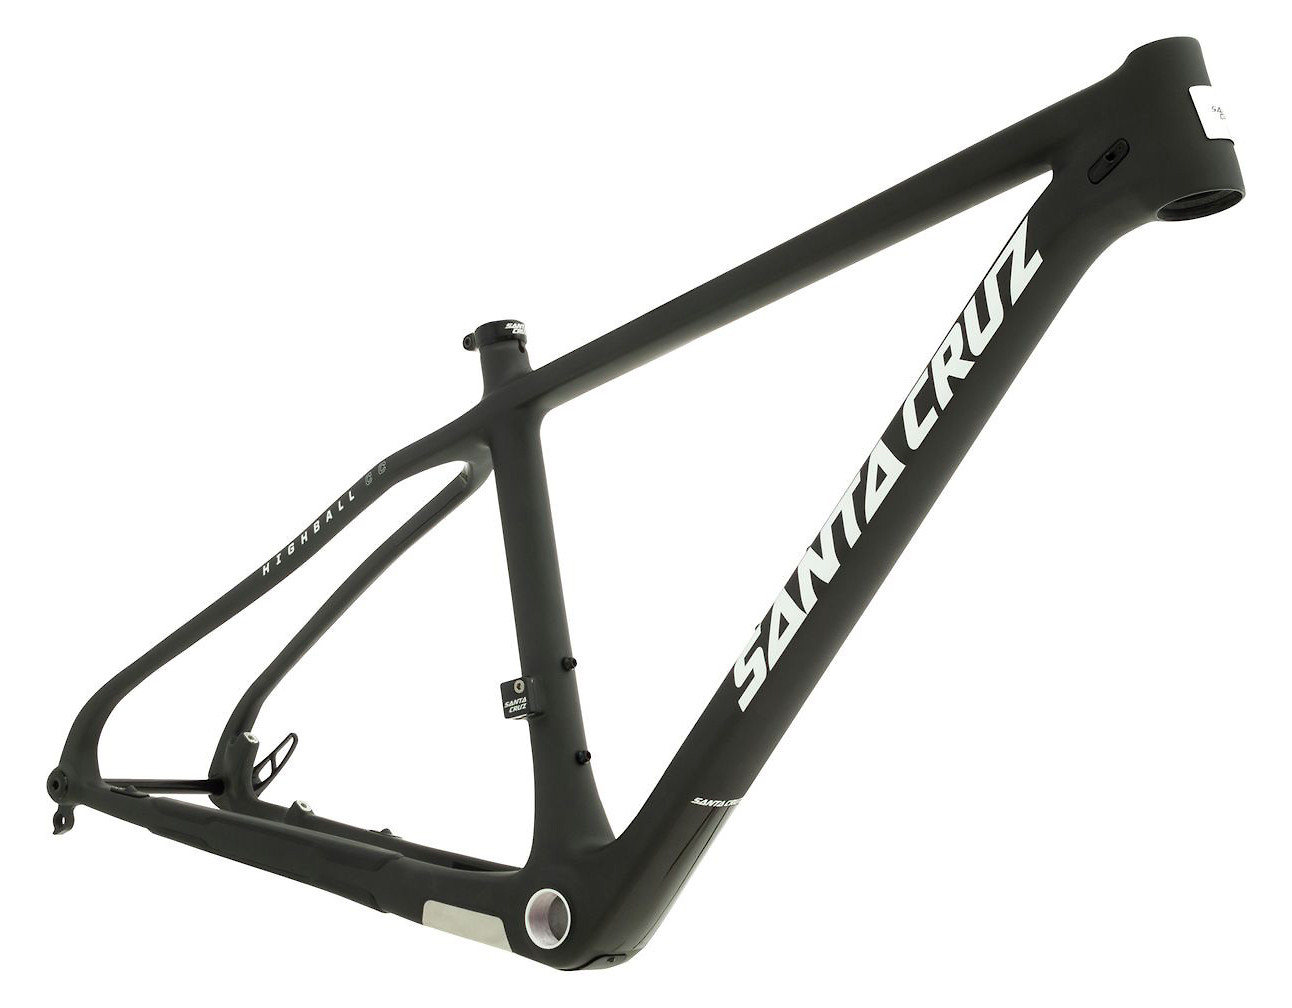 Santa Cruz Highball Carbon CC Frame - Reviews, Comparisons, Specs ...